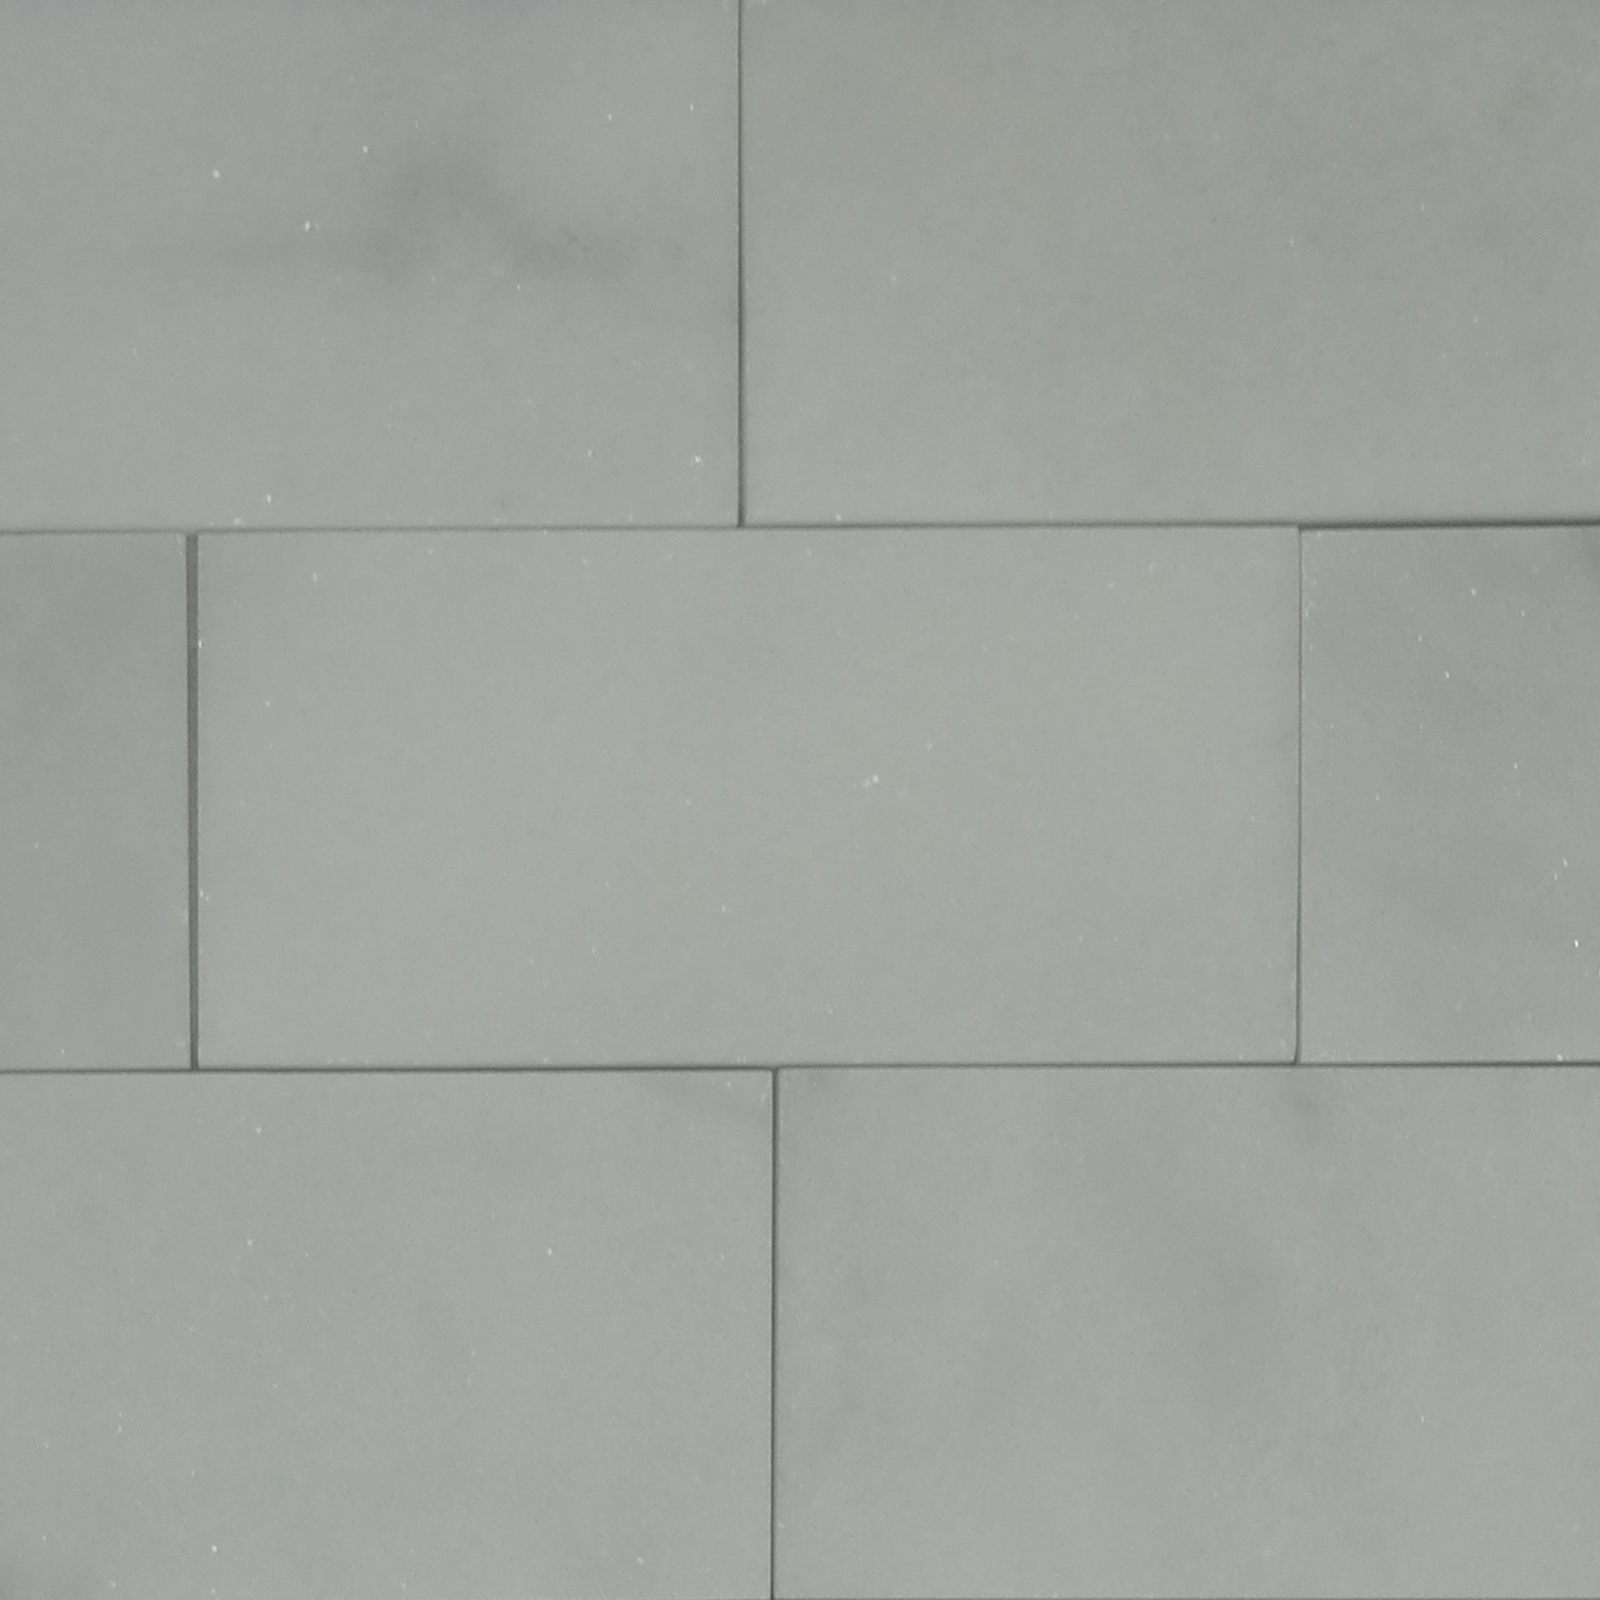 6x12 subway tile free bright white ice subway ceramic wall tile good x tile white marble polished xtilewhite with 6x12 subway tile dailygadgetfo Image collections